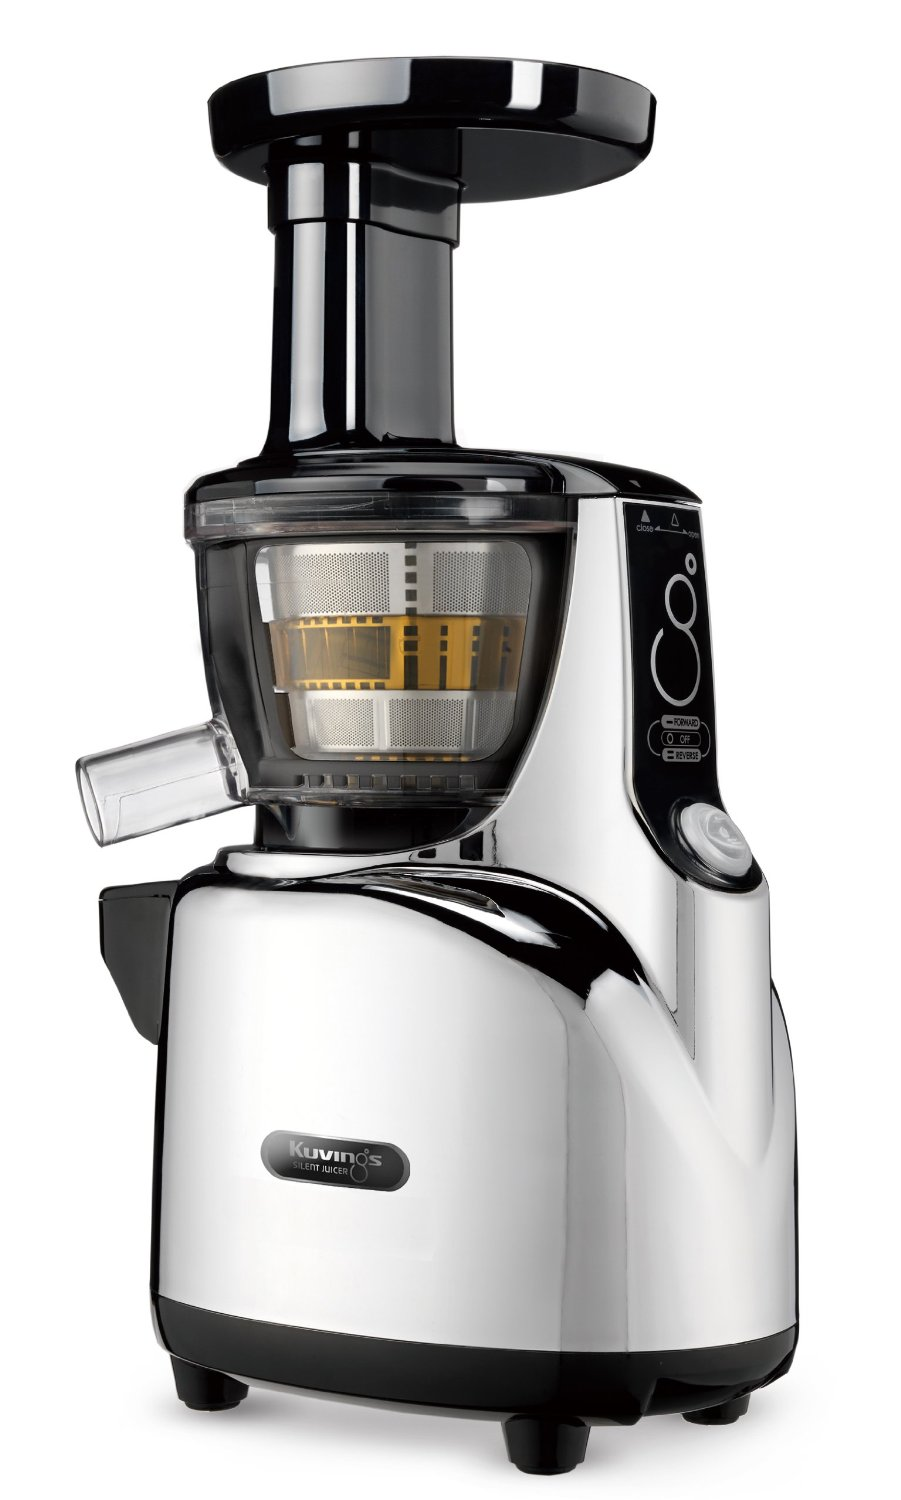 Kuvings Slow Juicer Vs Hurom : 5 Best Kuvings Juicer Reviews UPDATED: 2018 The Home Savant